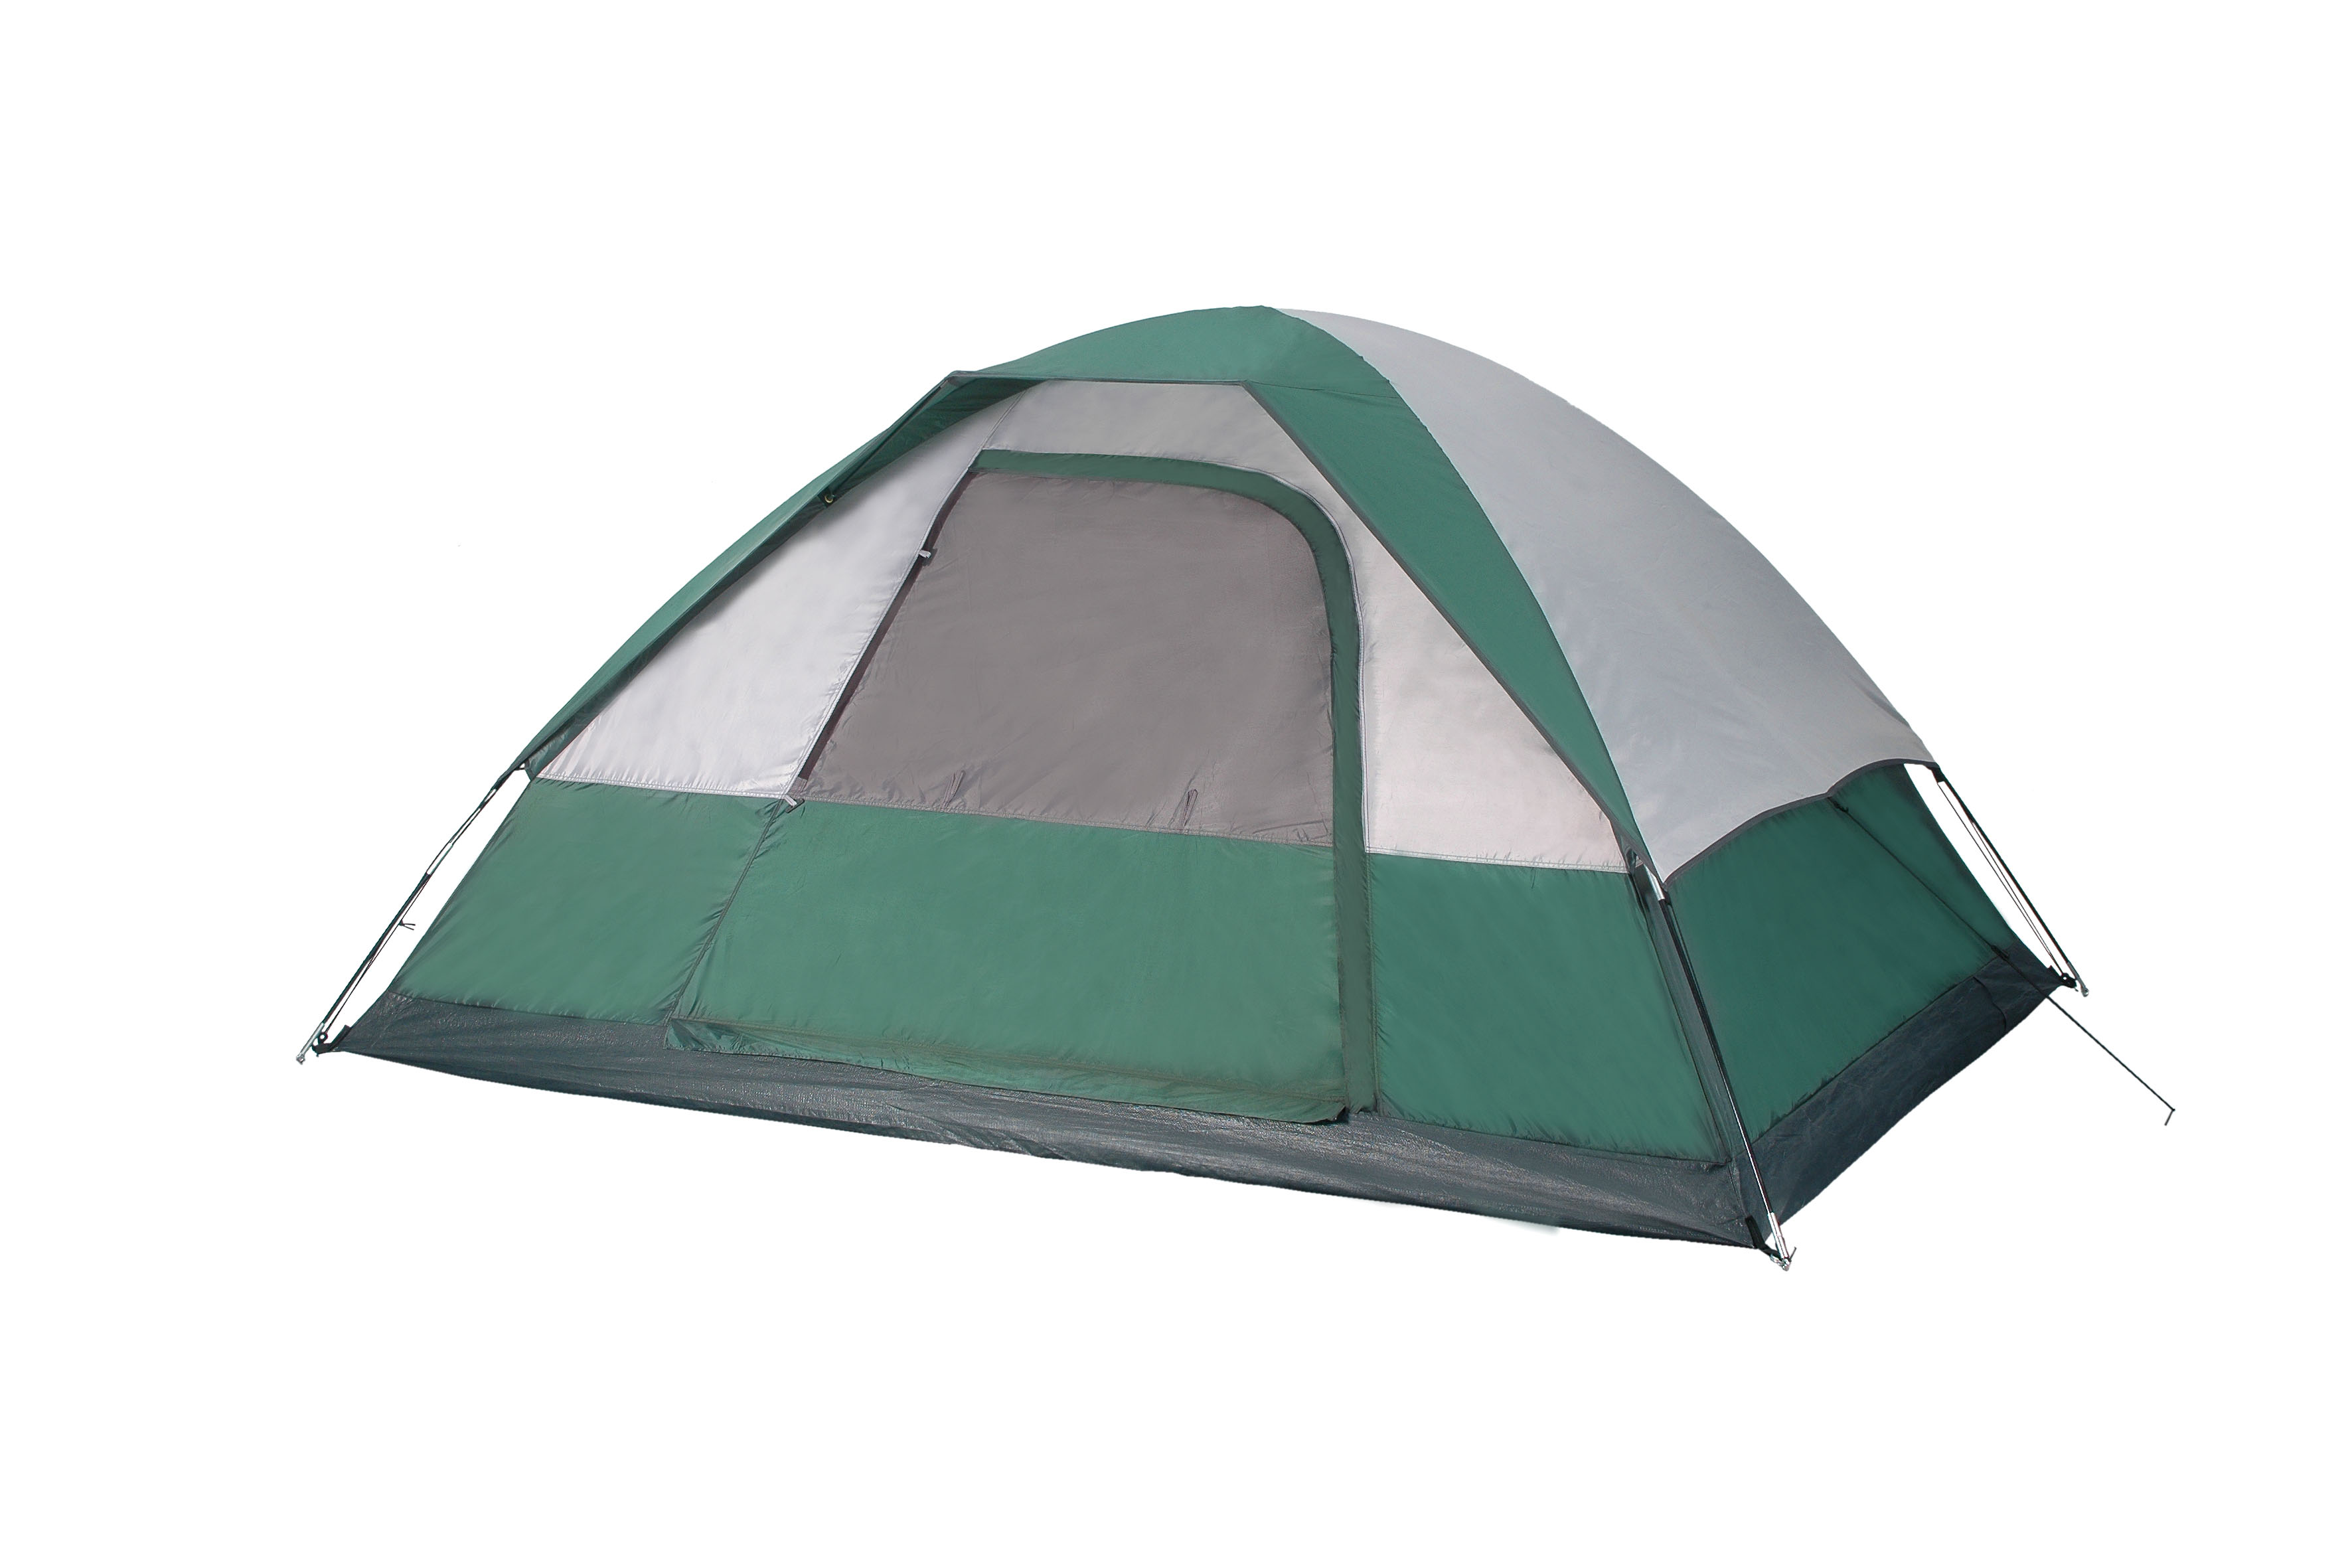 Camping Tent Clipart - Clipart - 460.6KB